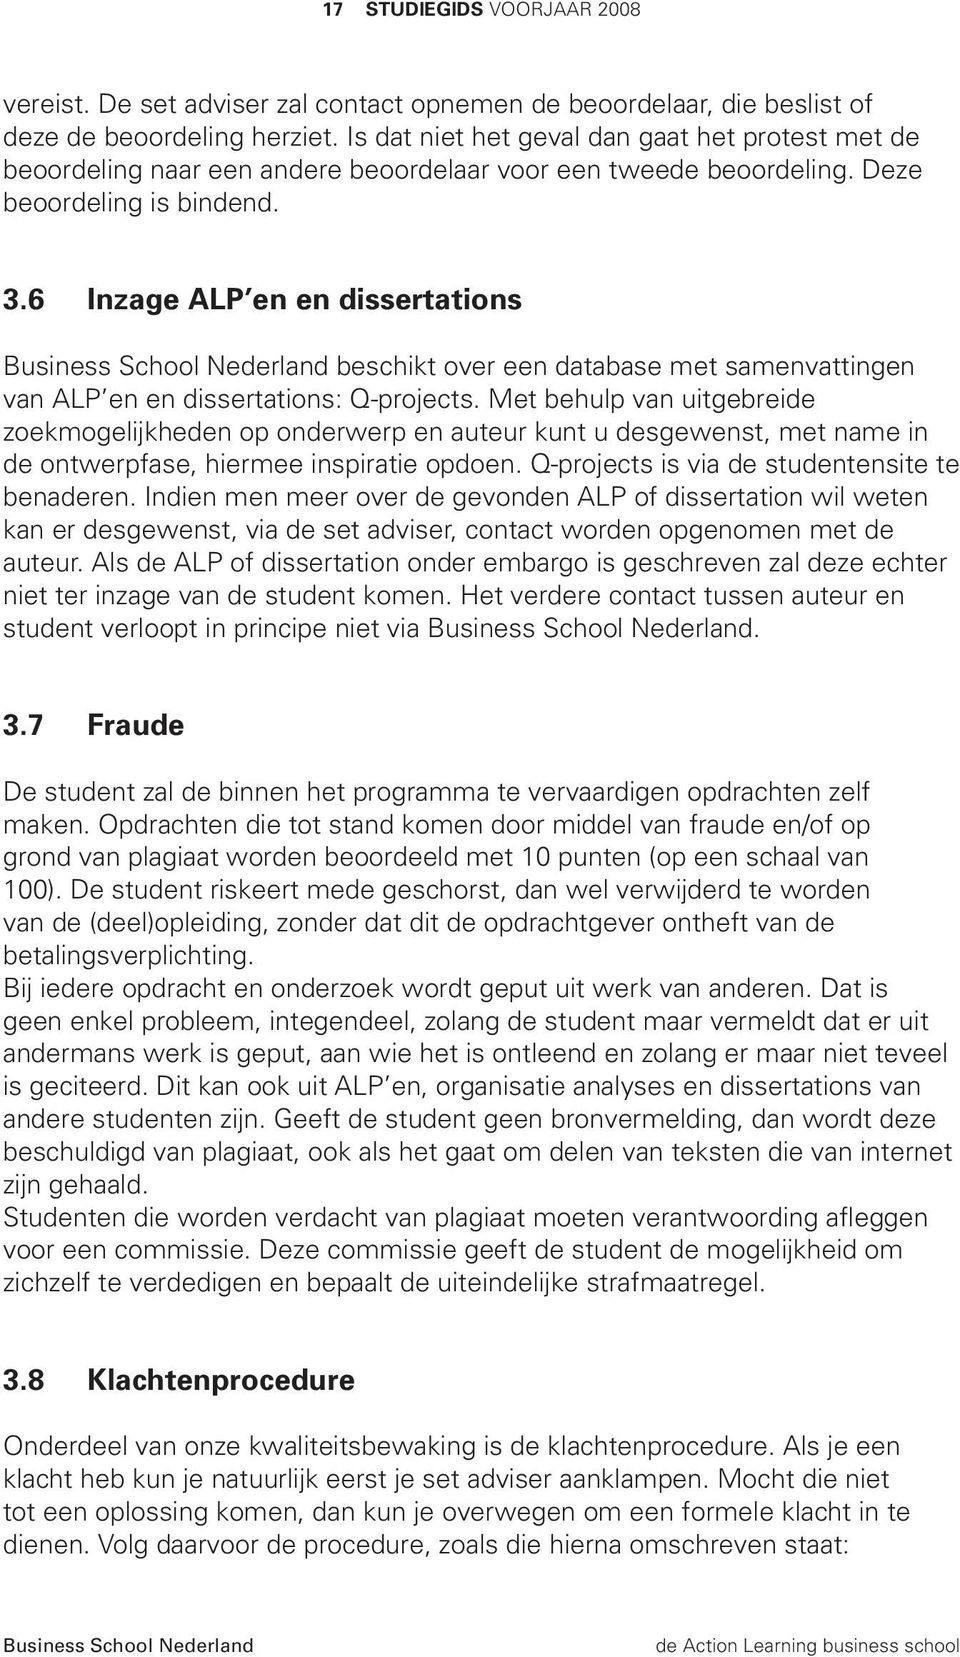 6 Inzage ALP en en dissertations beschikt over een database met samenvattingen van ALP en en dissertations: Q-projects.